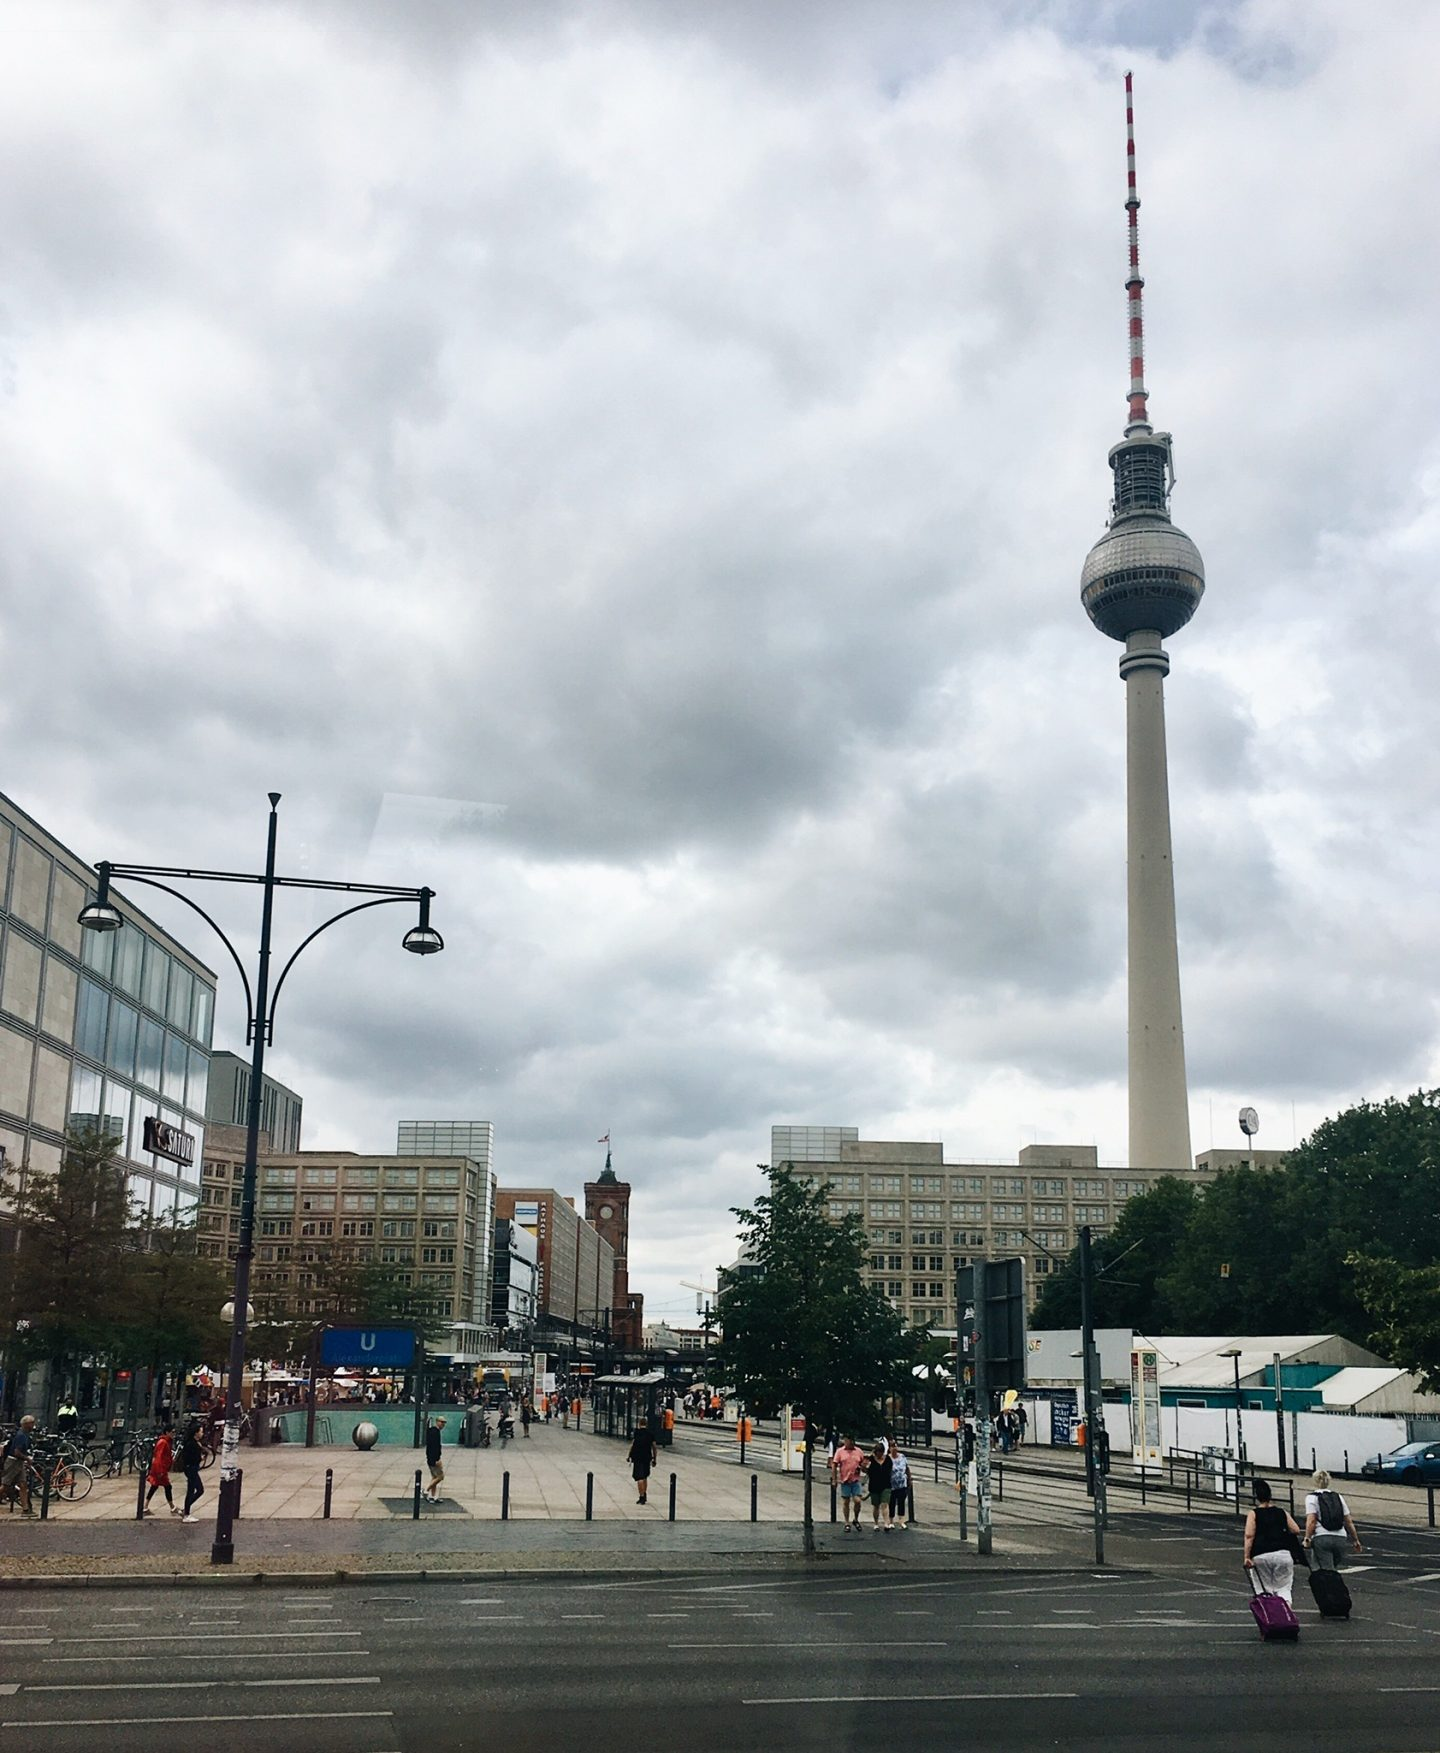 The famous TV tower in East Berlin, Germany.